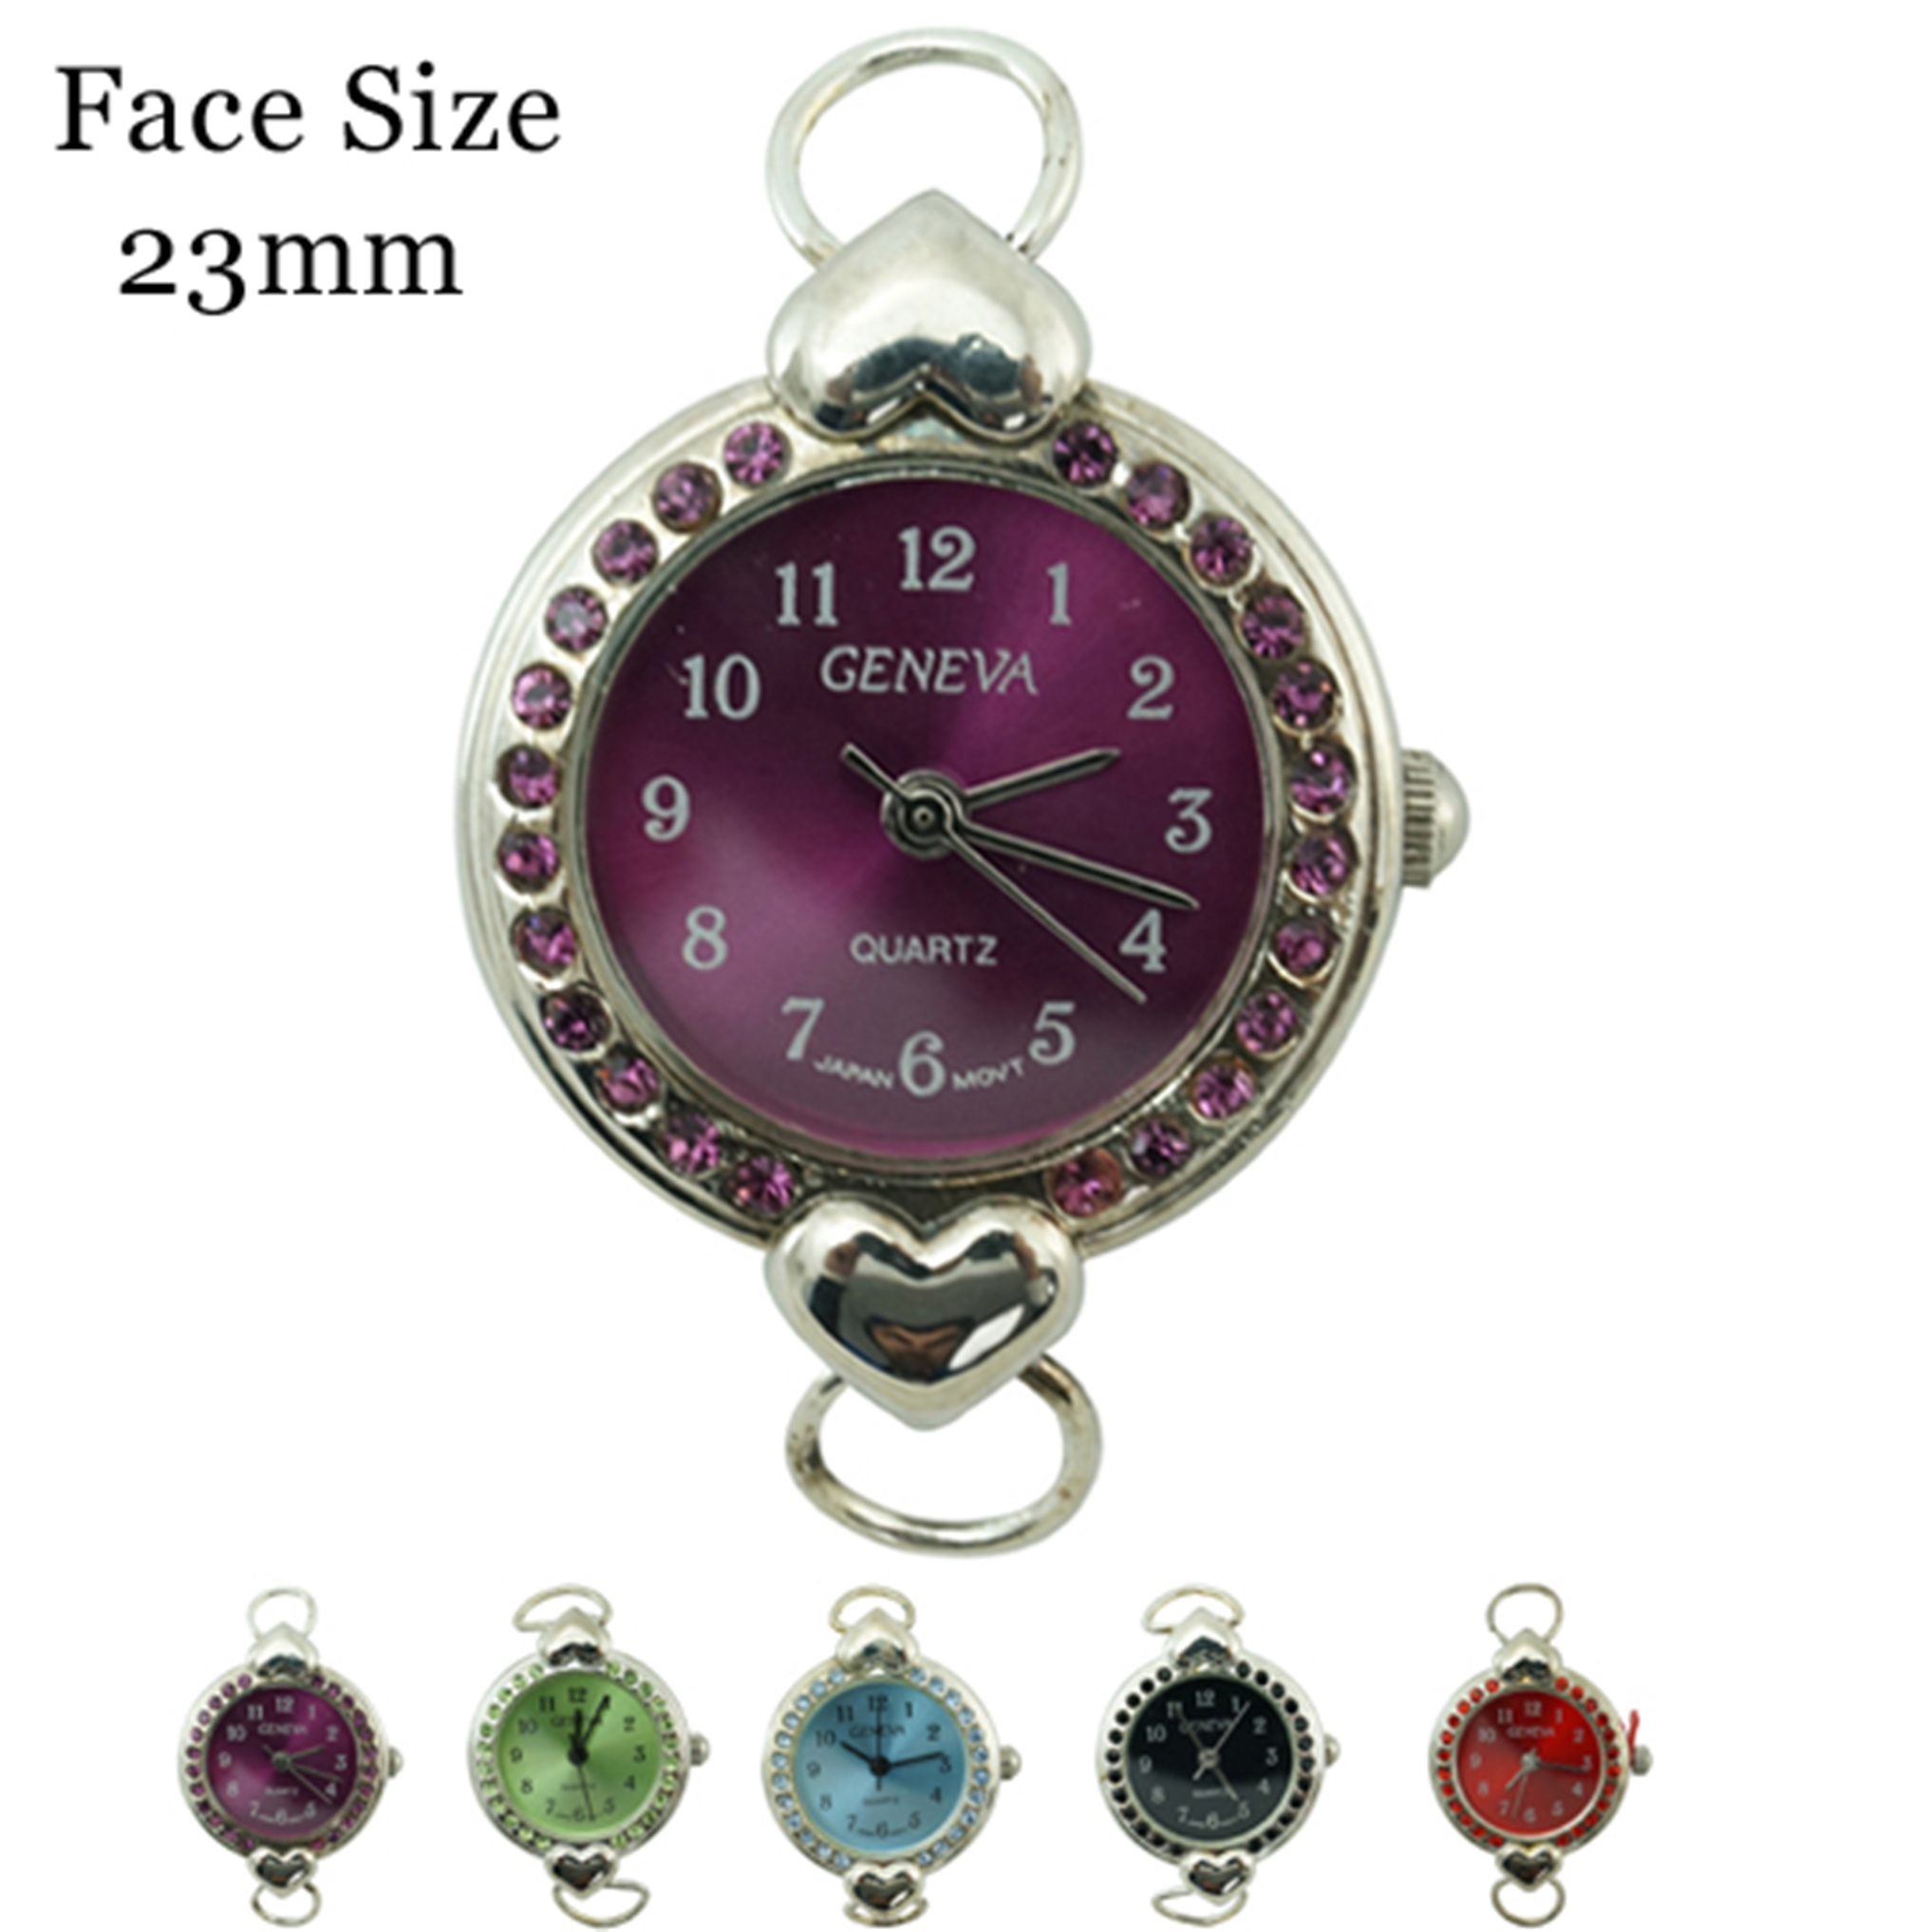 Women's CZ 23mm Dial with Colored Stone Border face